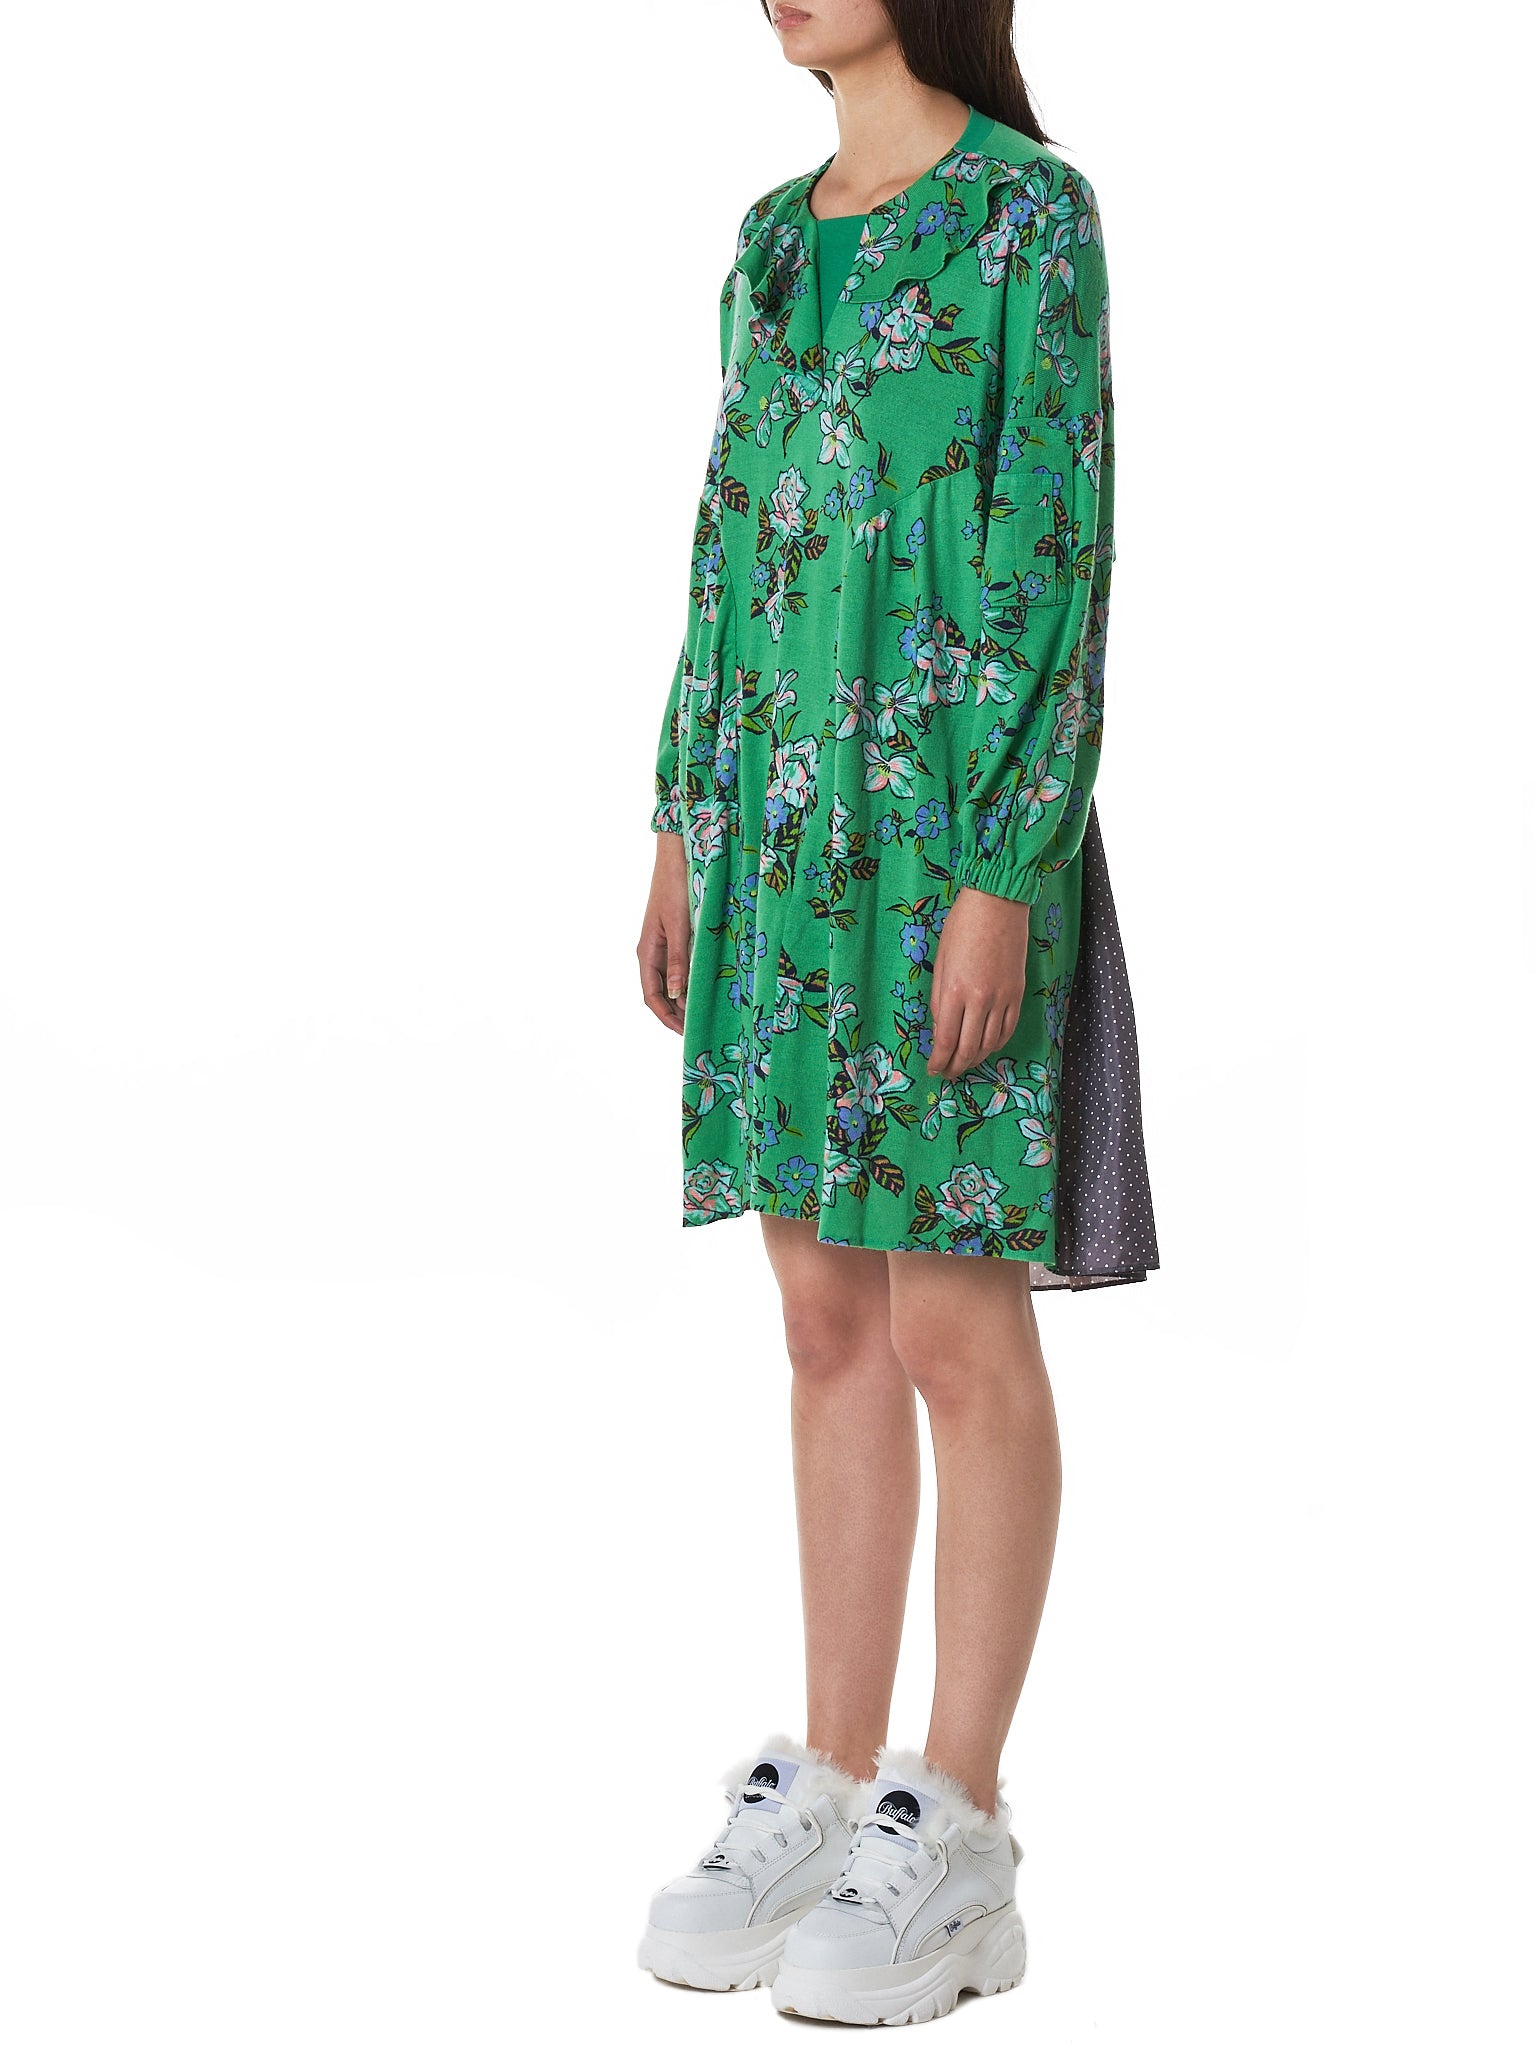 Jenny Fax Dress - Hlorenzo Side